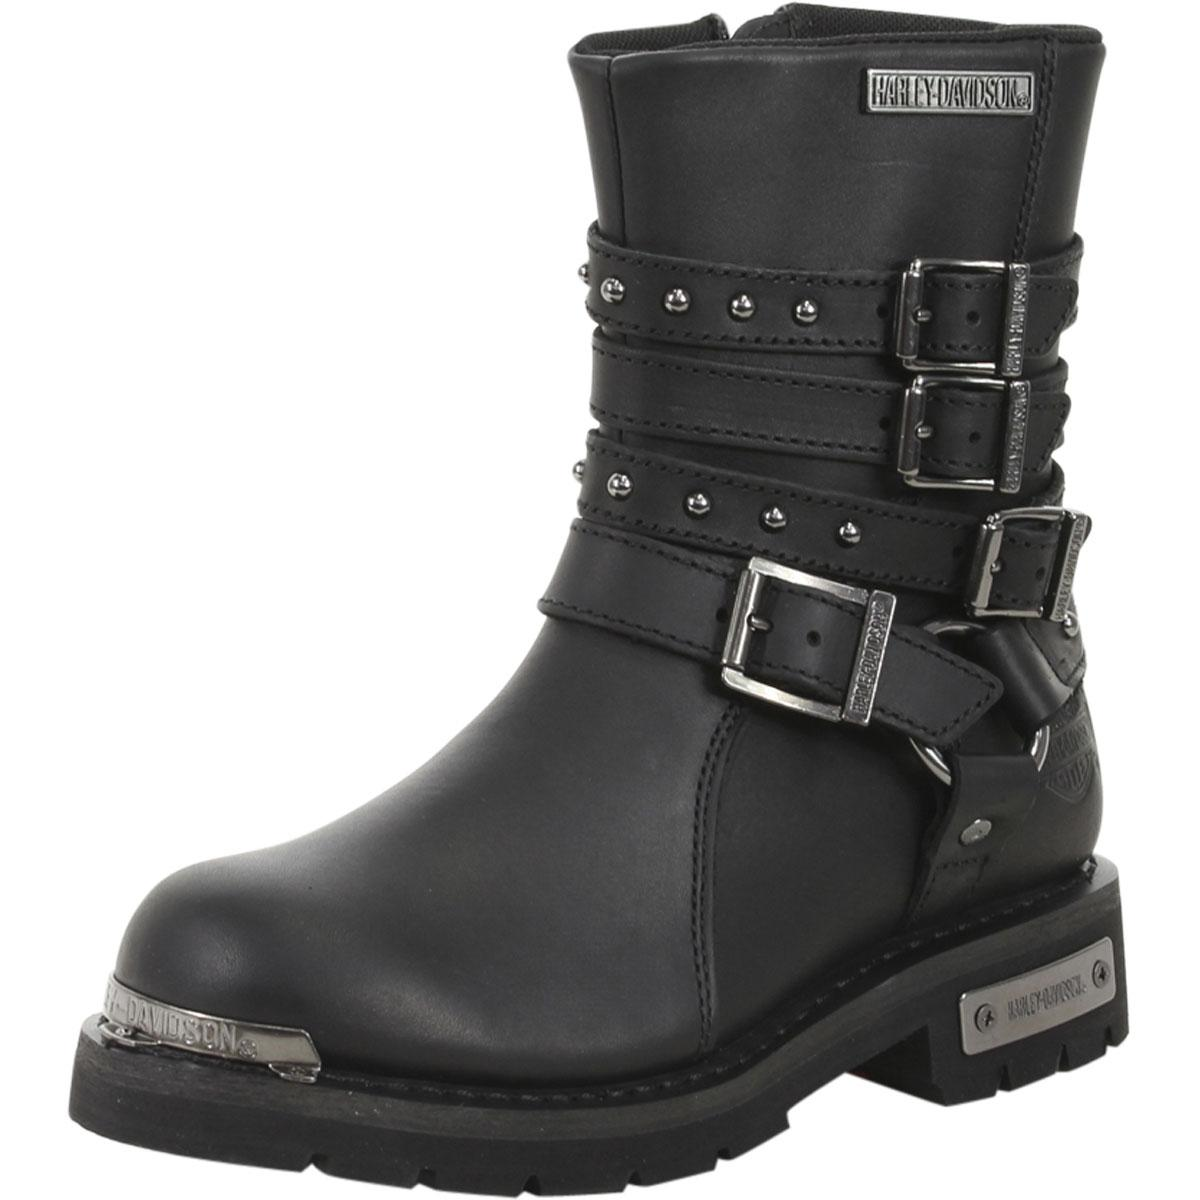 Shoes Davidson Boots Harley Women's Eddington Motorcycle DeYWE9IH2